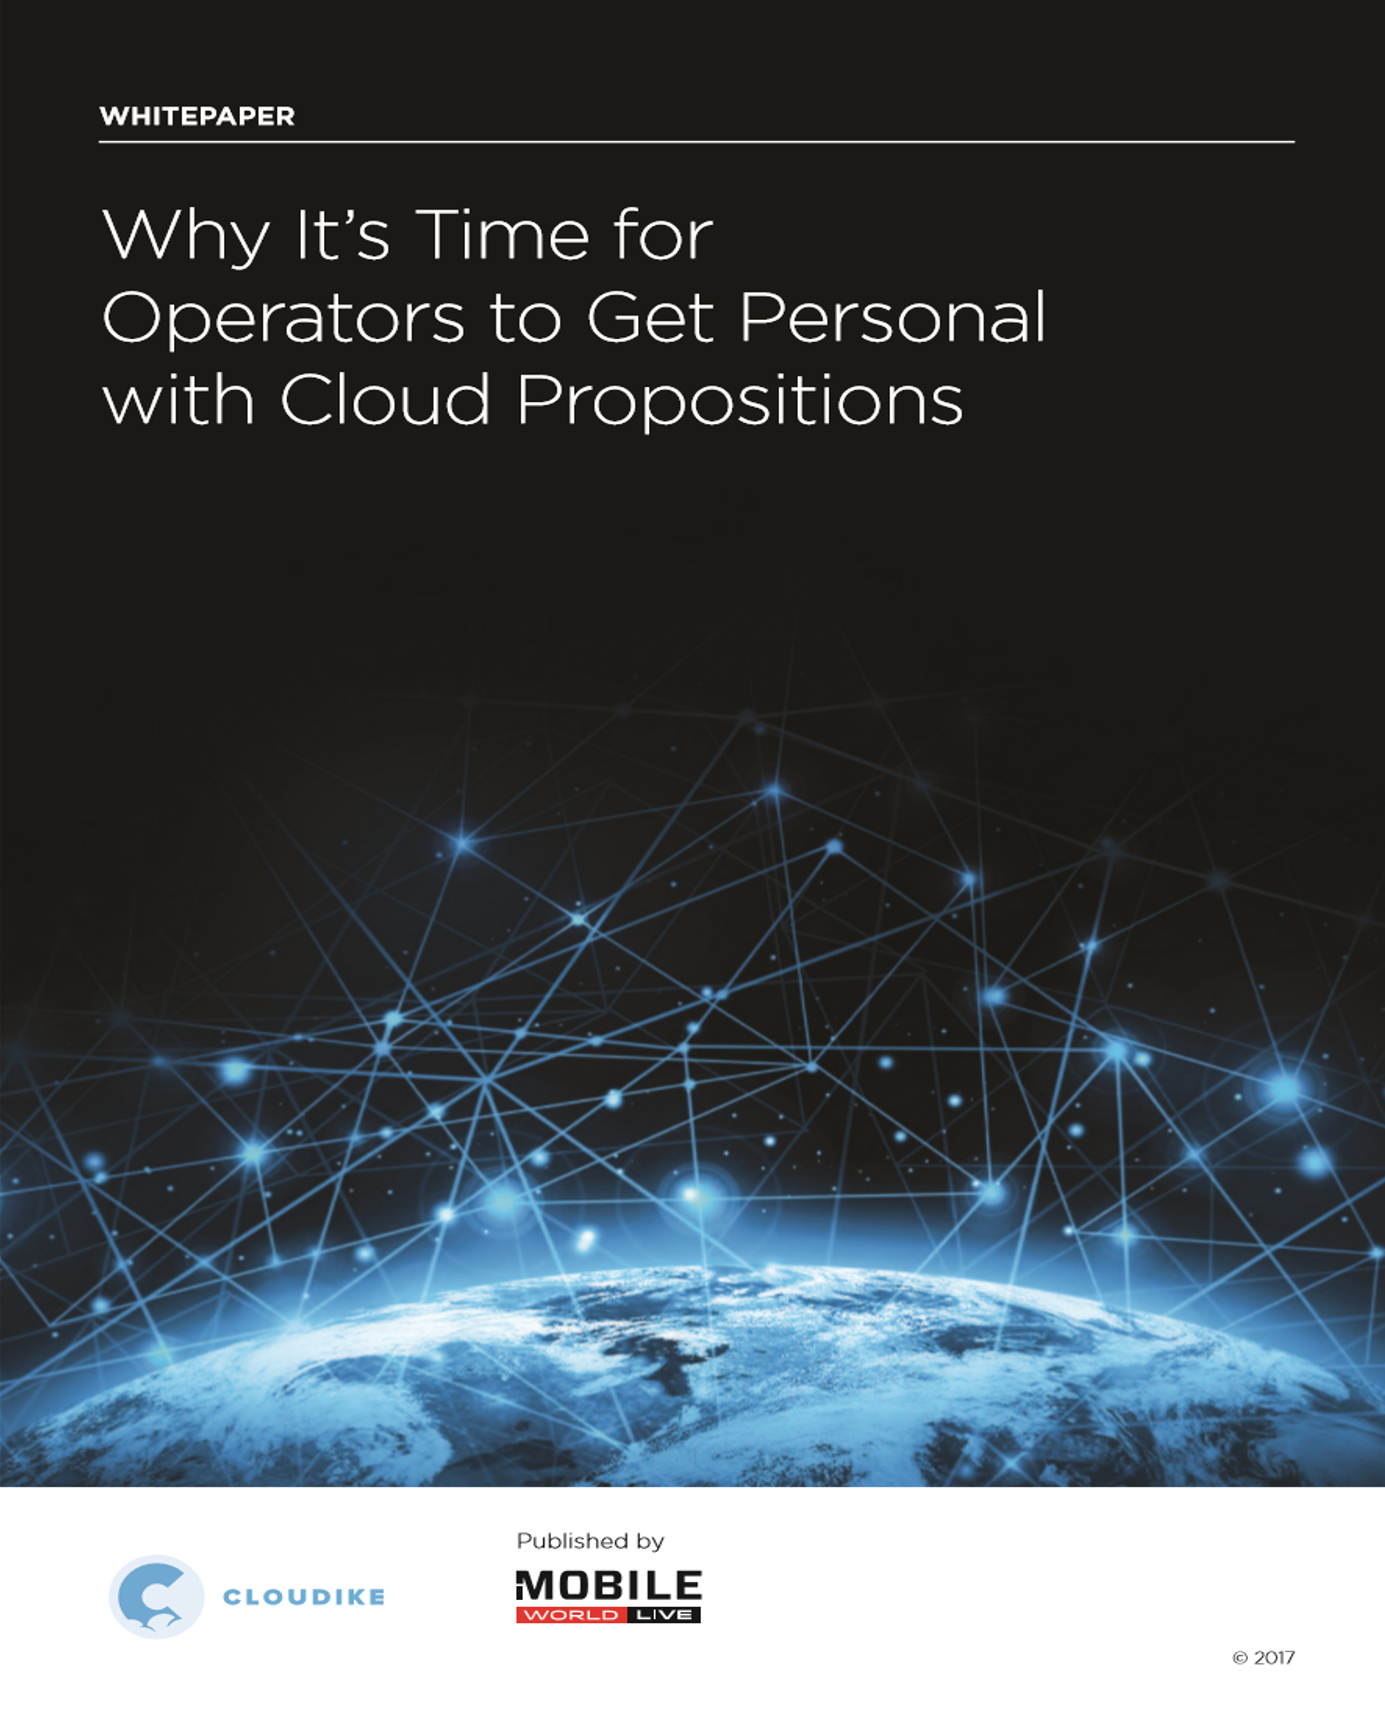 Why It's Time for Operators to Get Personal with Cloud Propositions